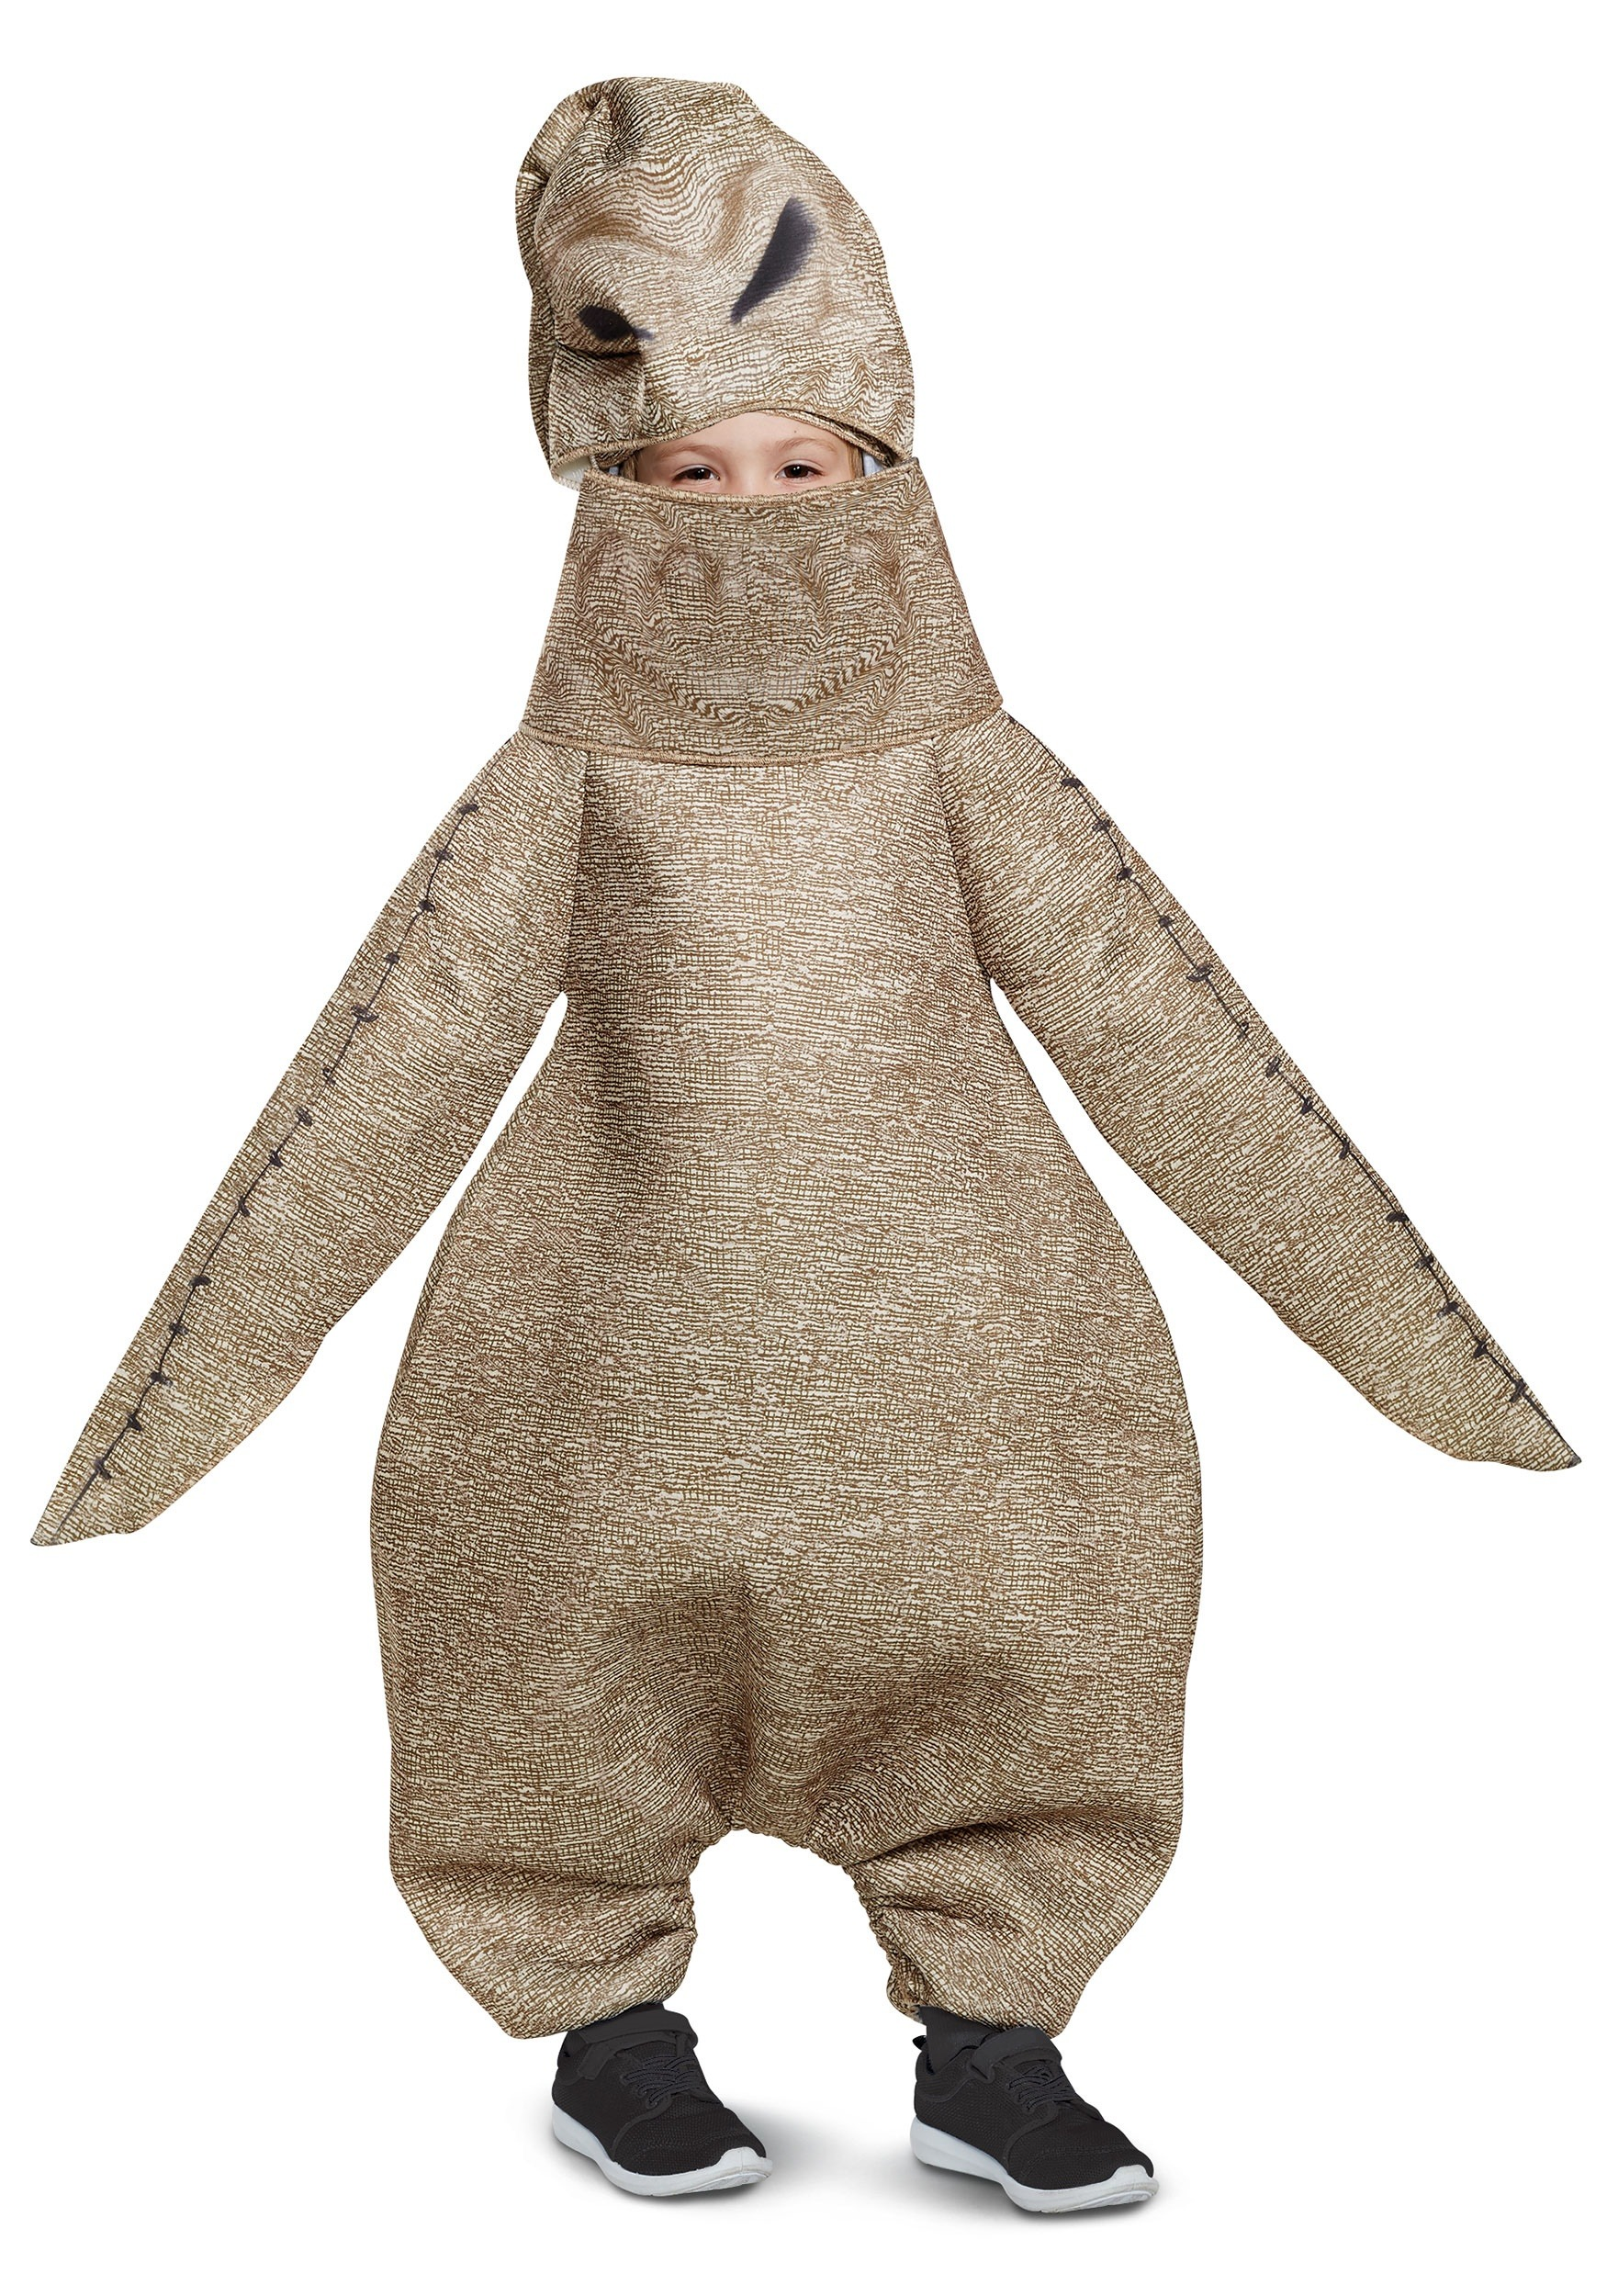 79d0d5b3f2d77 Nightmare Before Christmas Costume Classic Oogie Boogie Costume